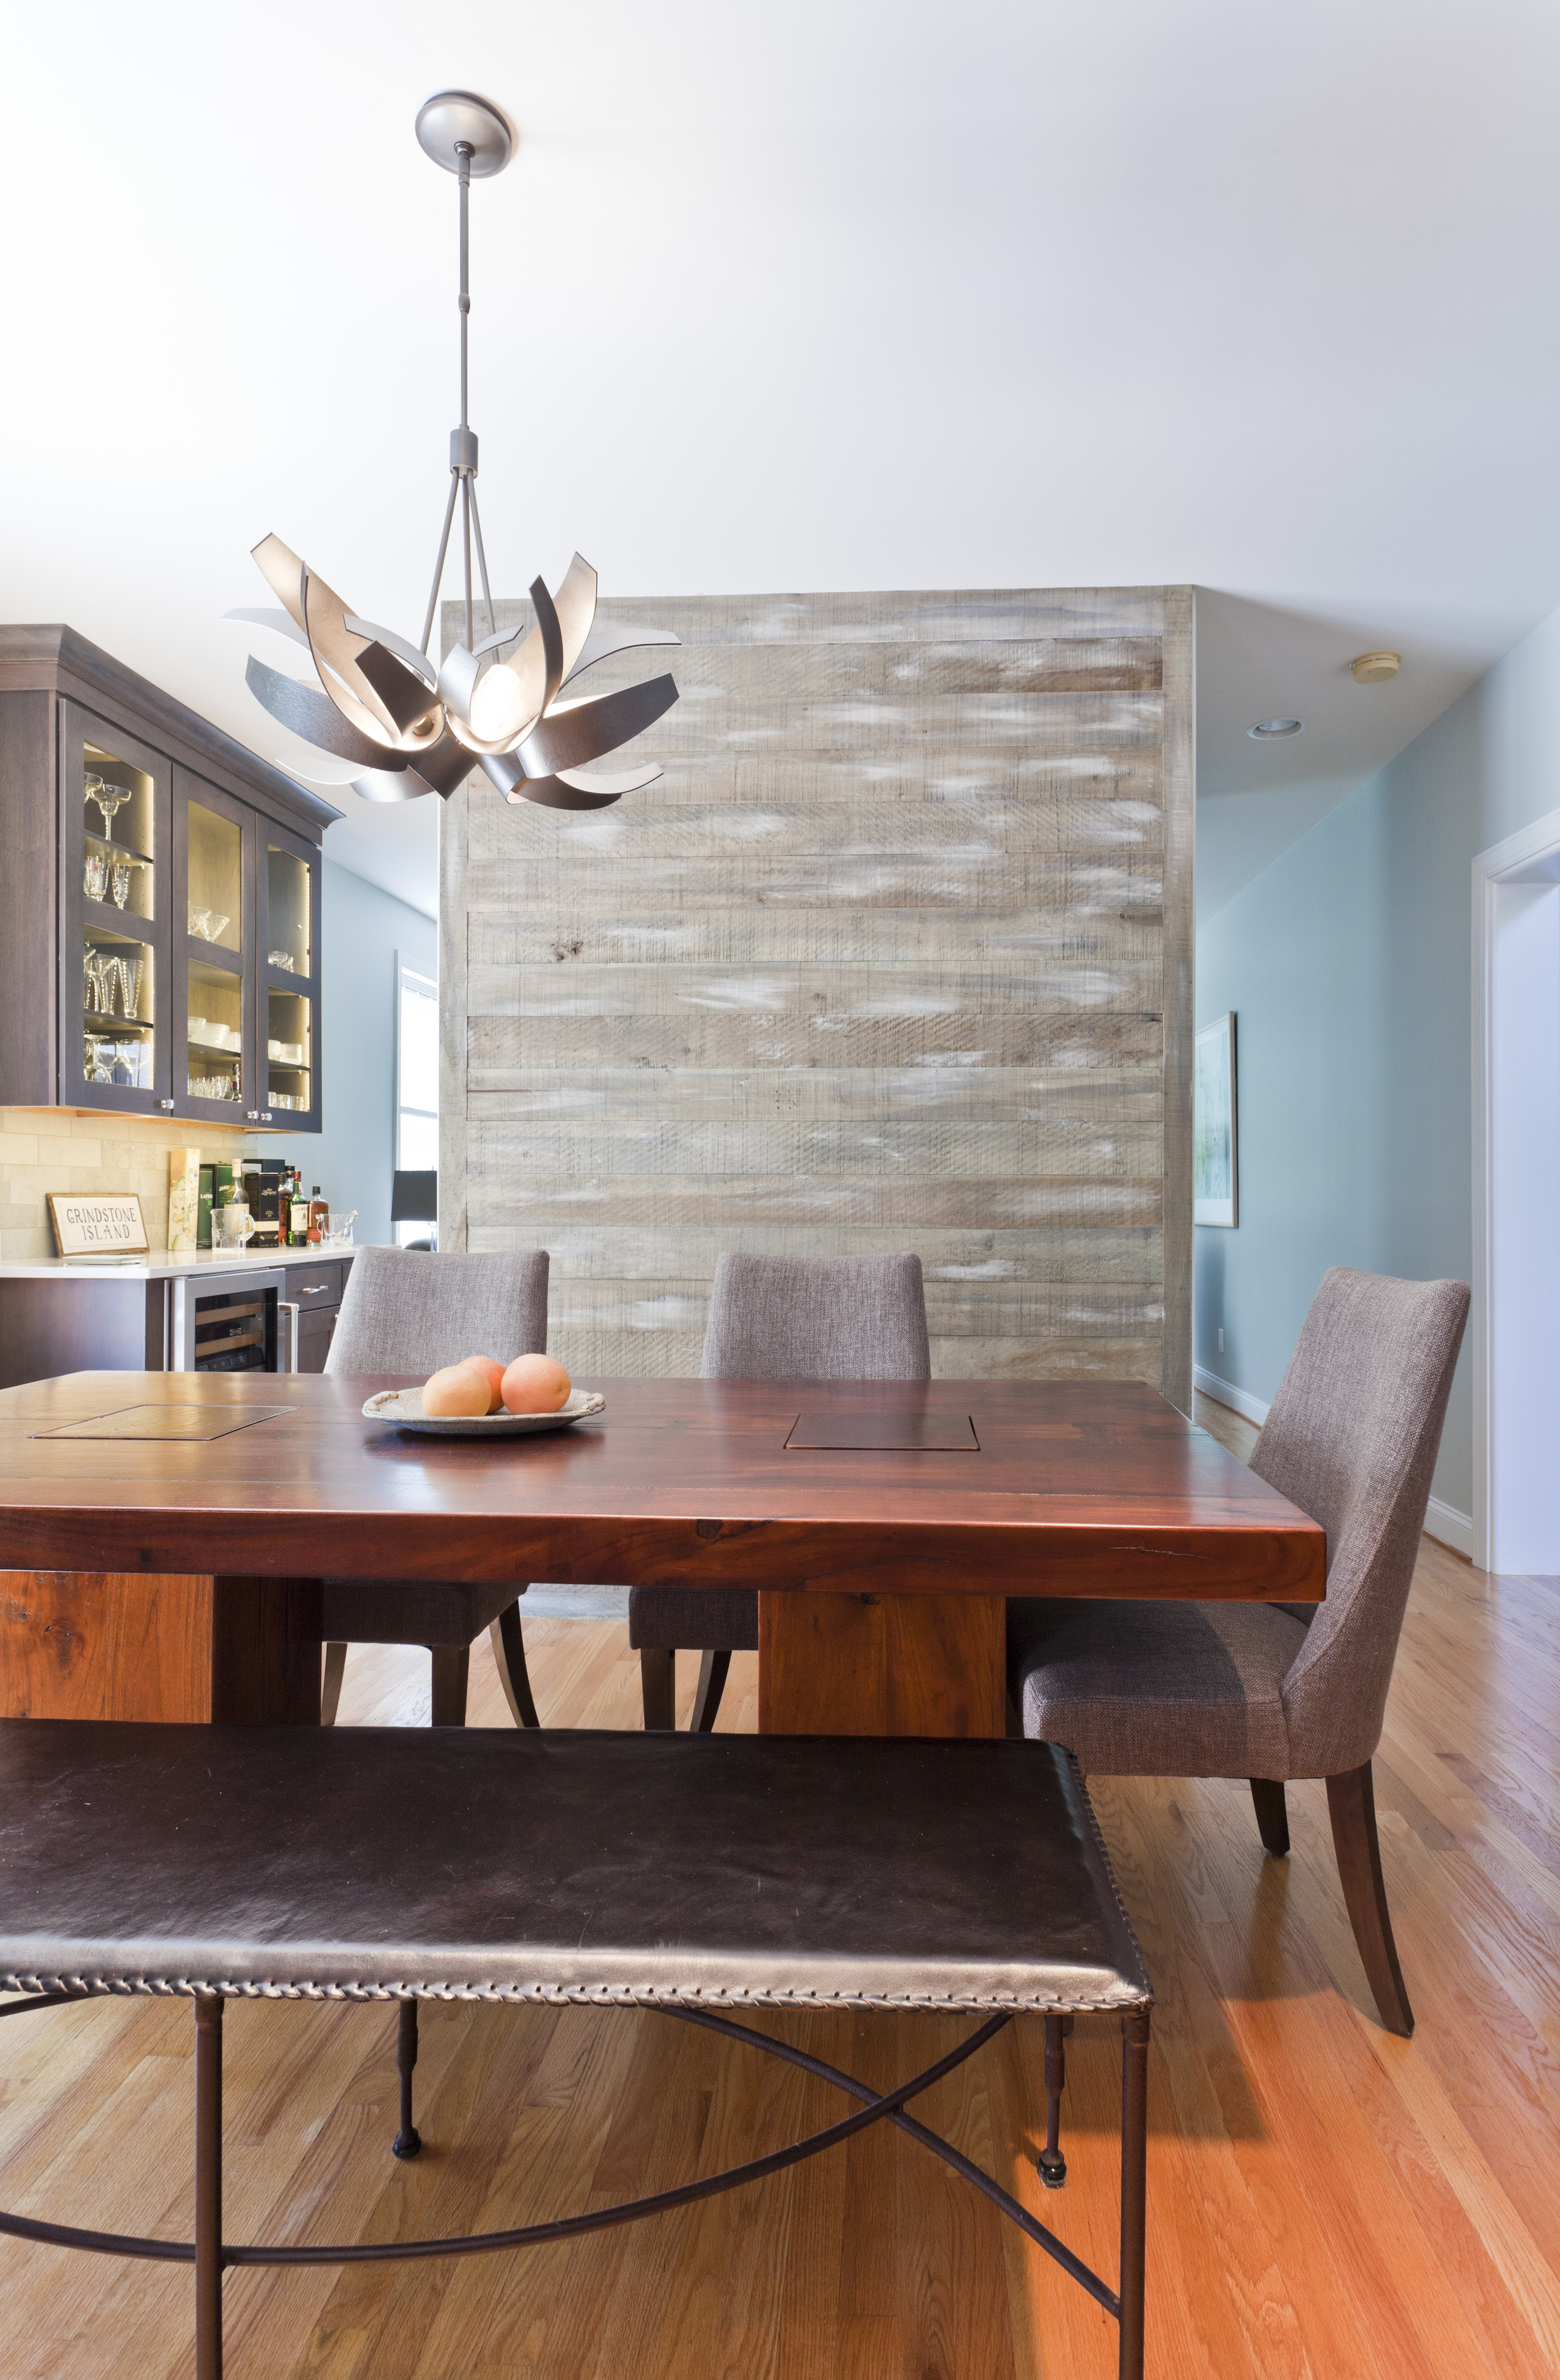 A floating wall on this side of the kitchen provides separation from the remaining space but yet keeps an open feel.